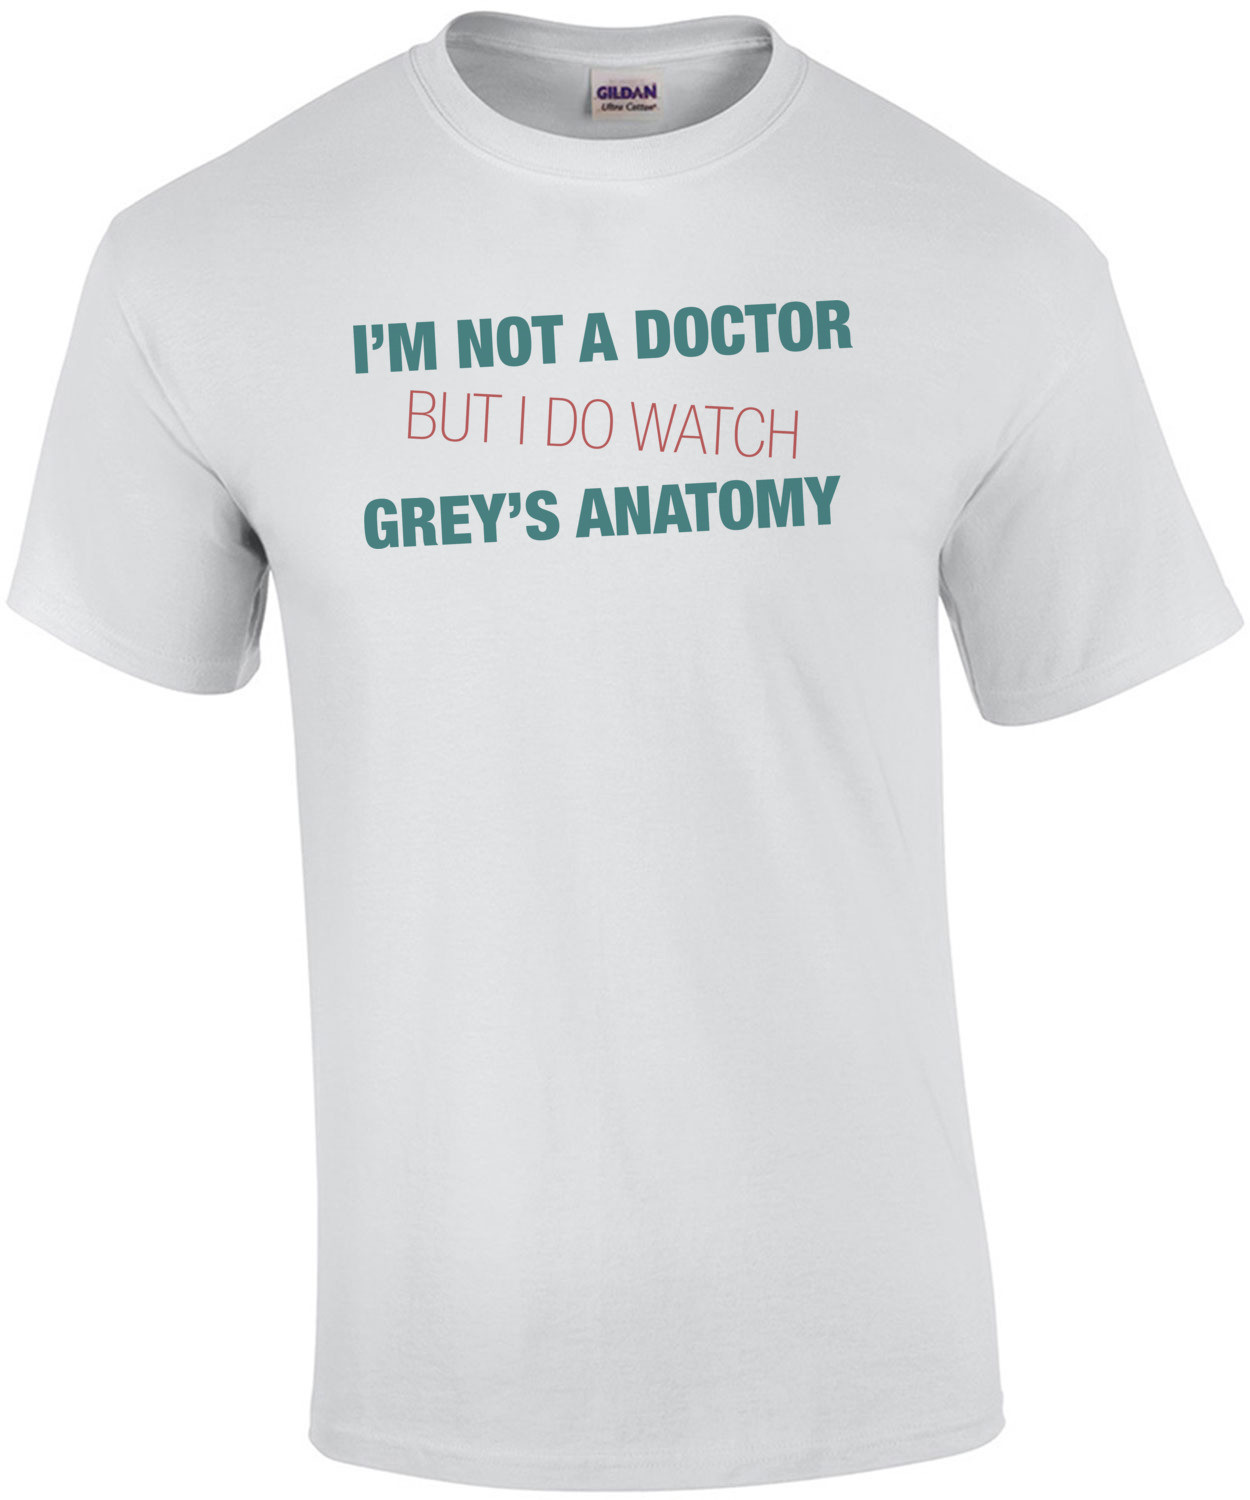 I'm Not a Doctor But I Watch Grey's Anatomy T-Shirt